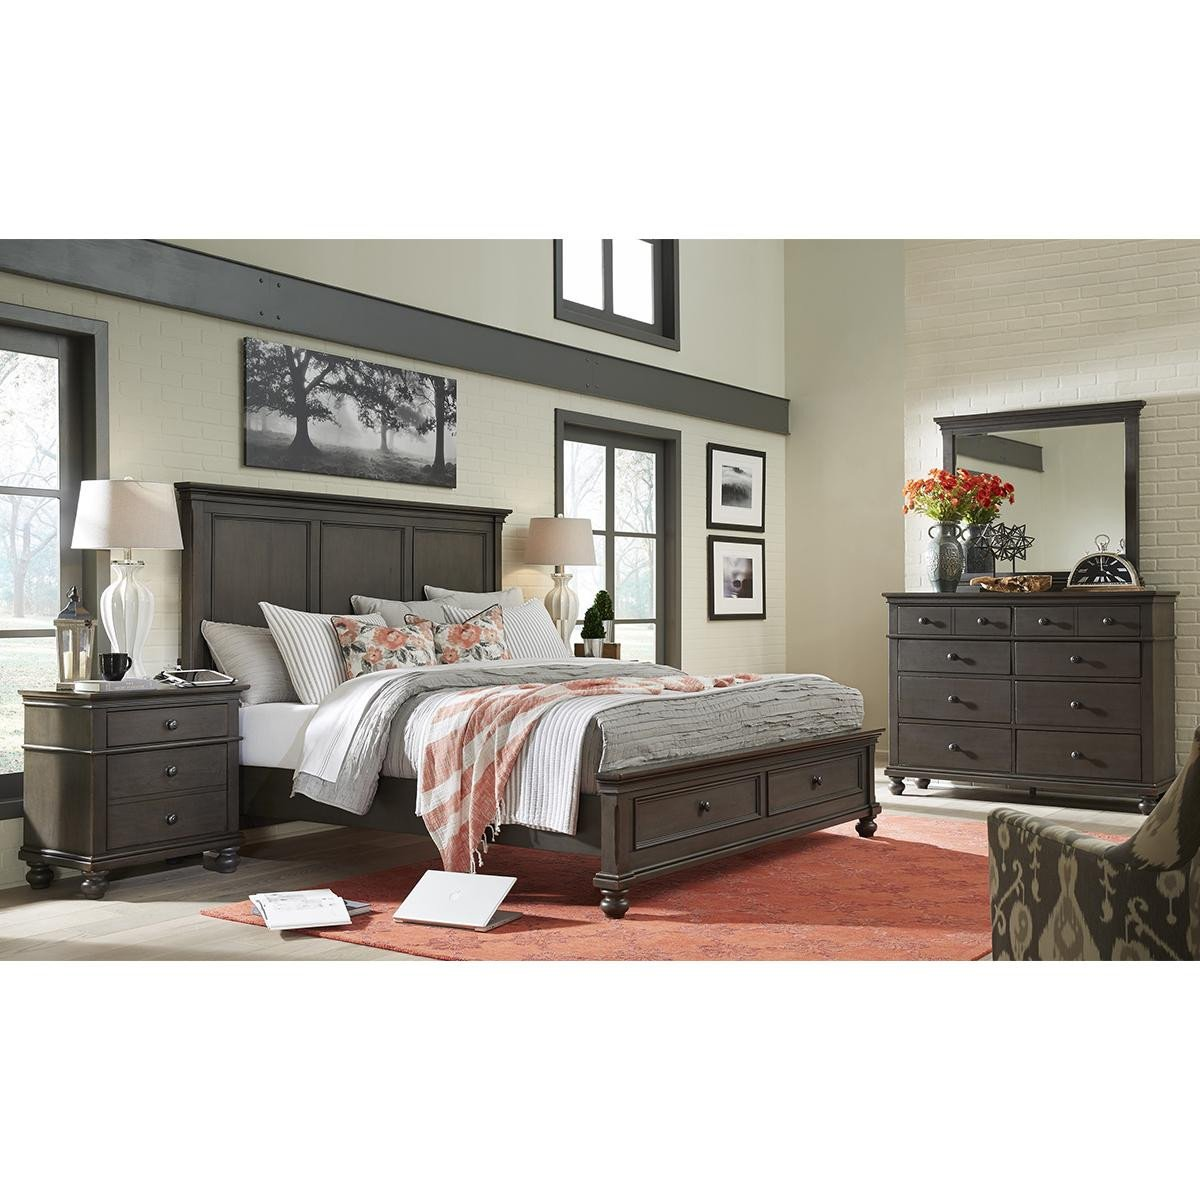 Mirrored Headboard Bedroom Set Beautiful Riva Ridge Oxford 4 Piece Queen Bedroom Set In Peppercorn